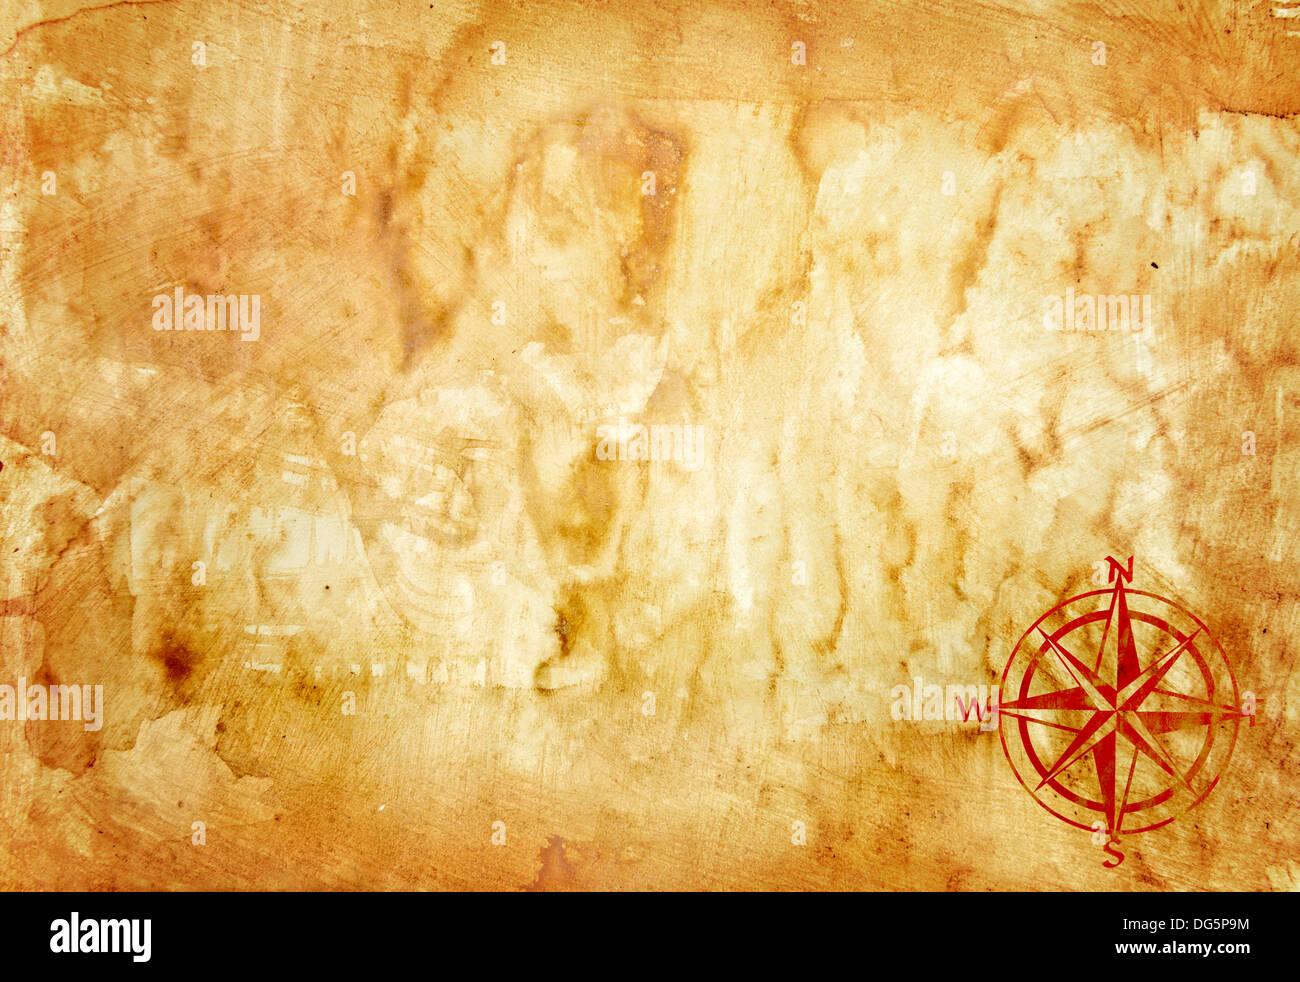 ancient map grunge paper background - Stock Image